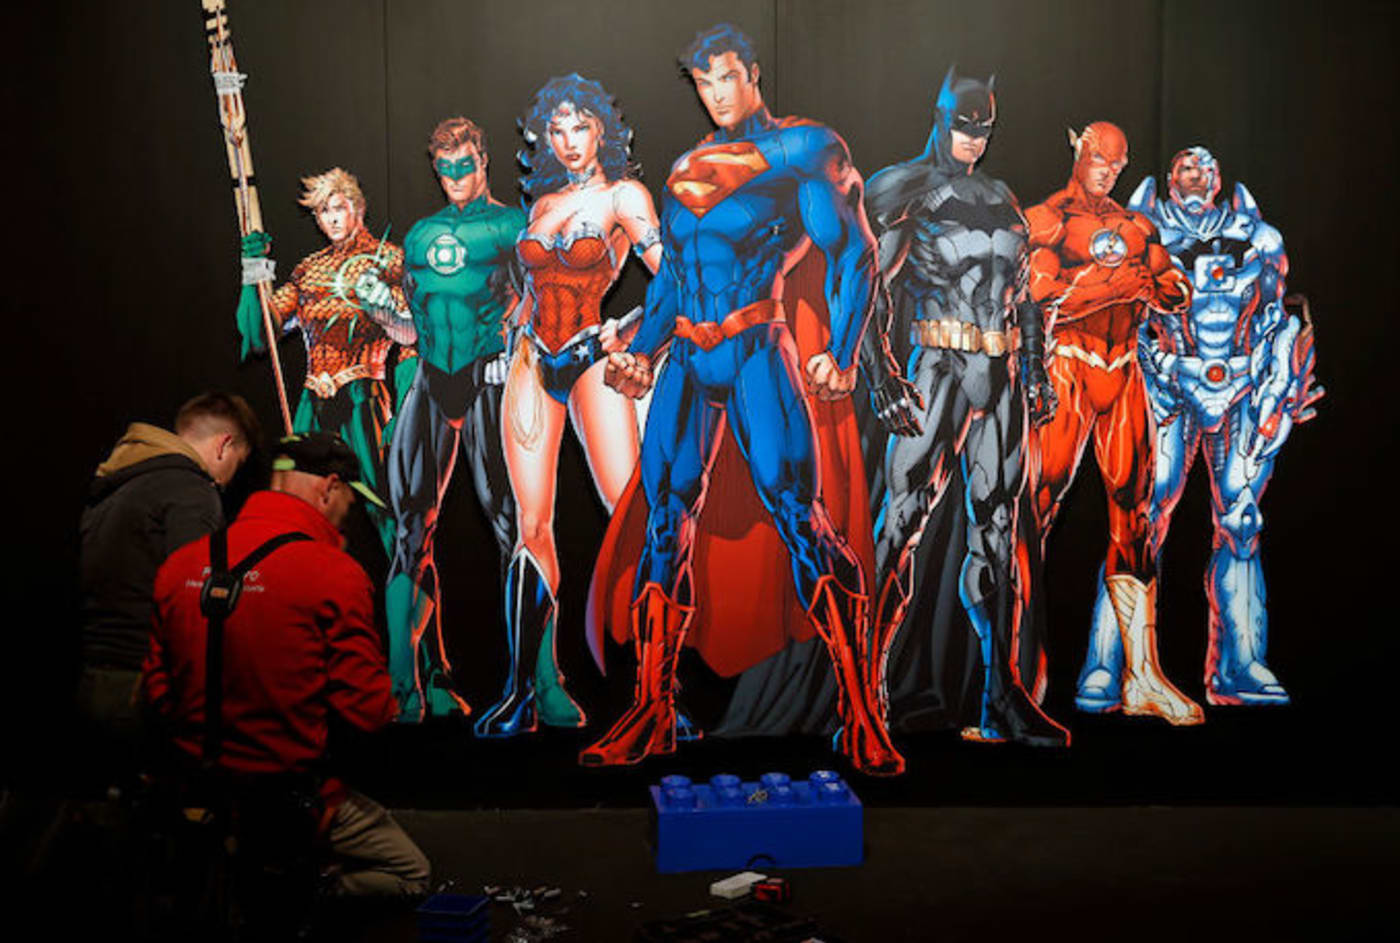 This is a picture of DC Comics.